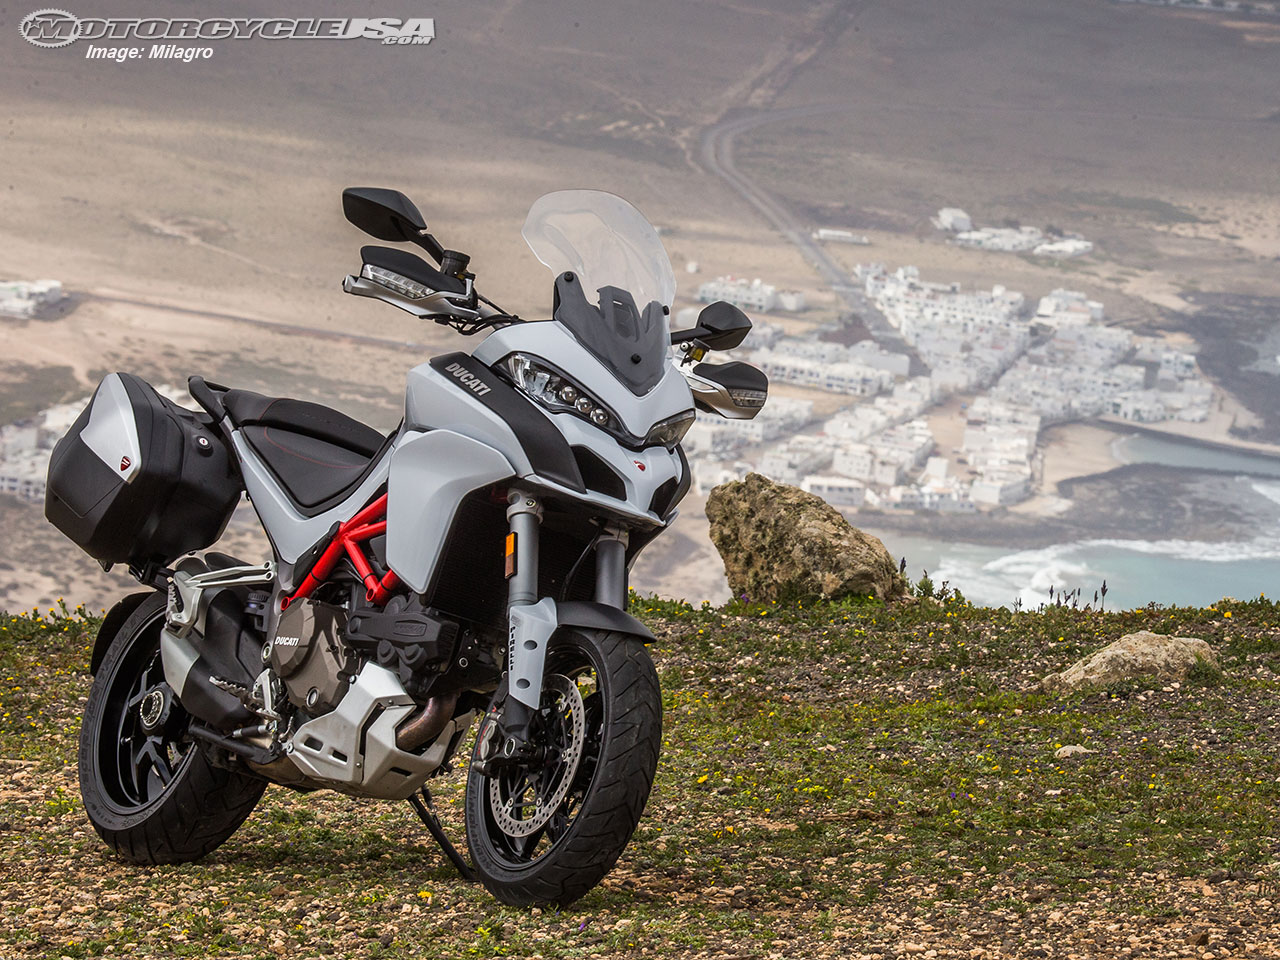 Ducati Multistrada 1200 2015 wallpapers #13197